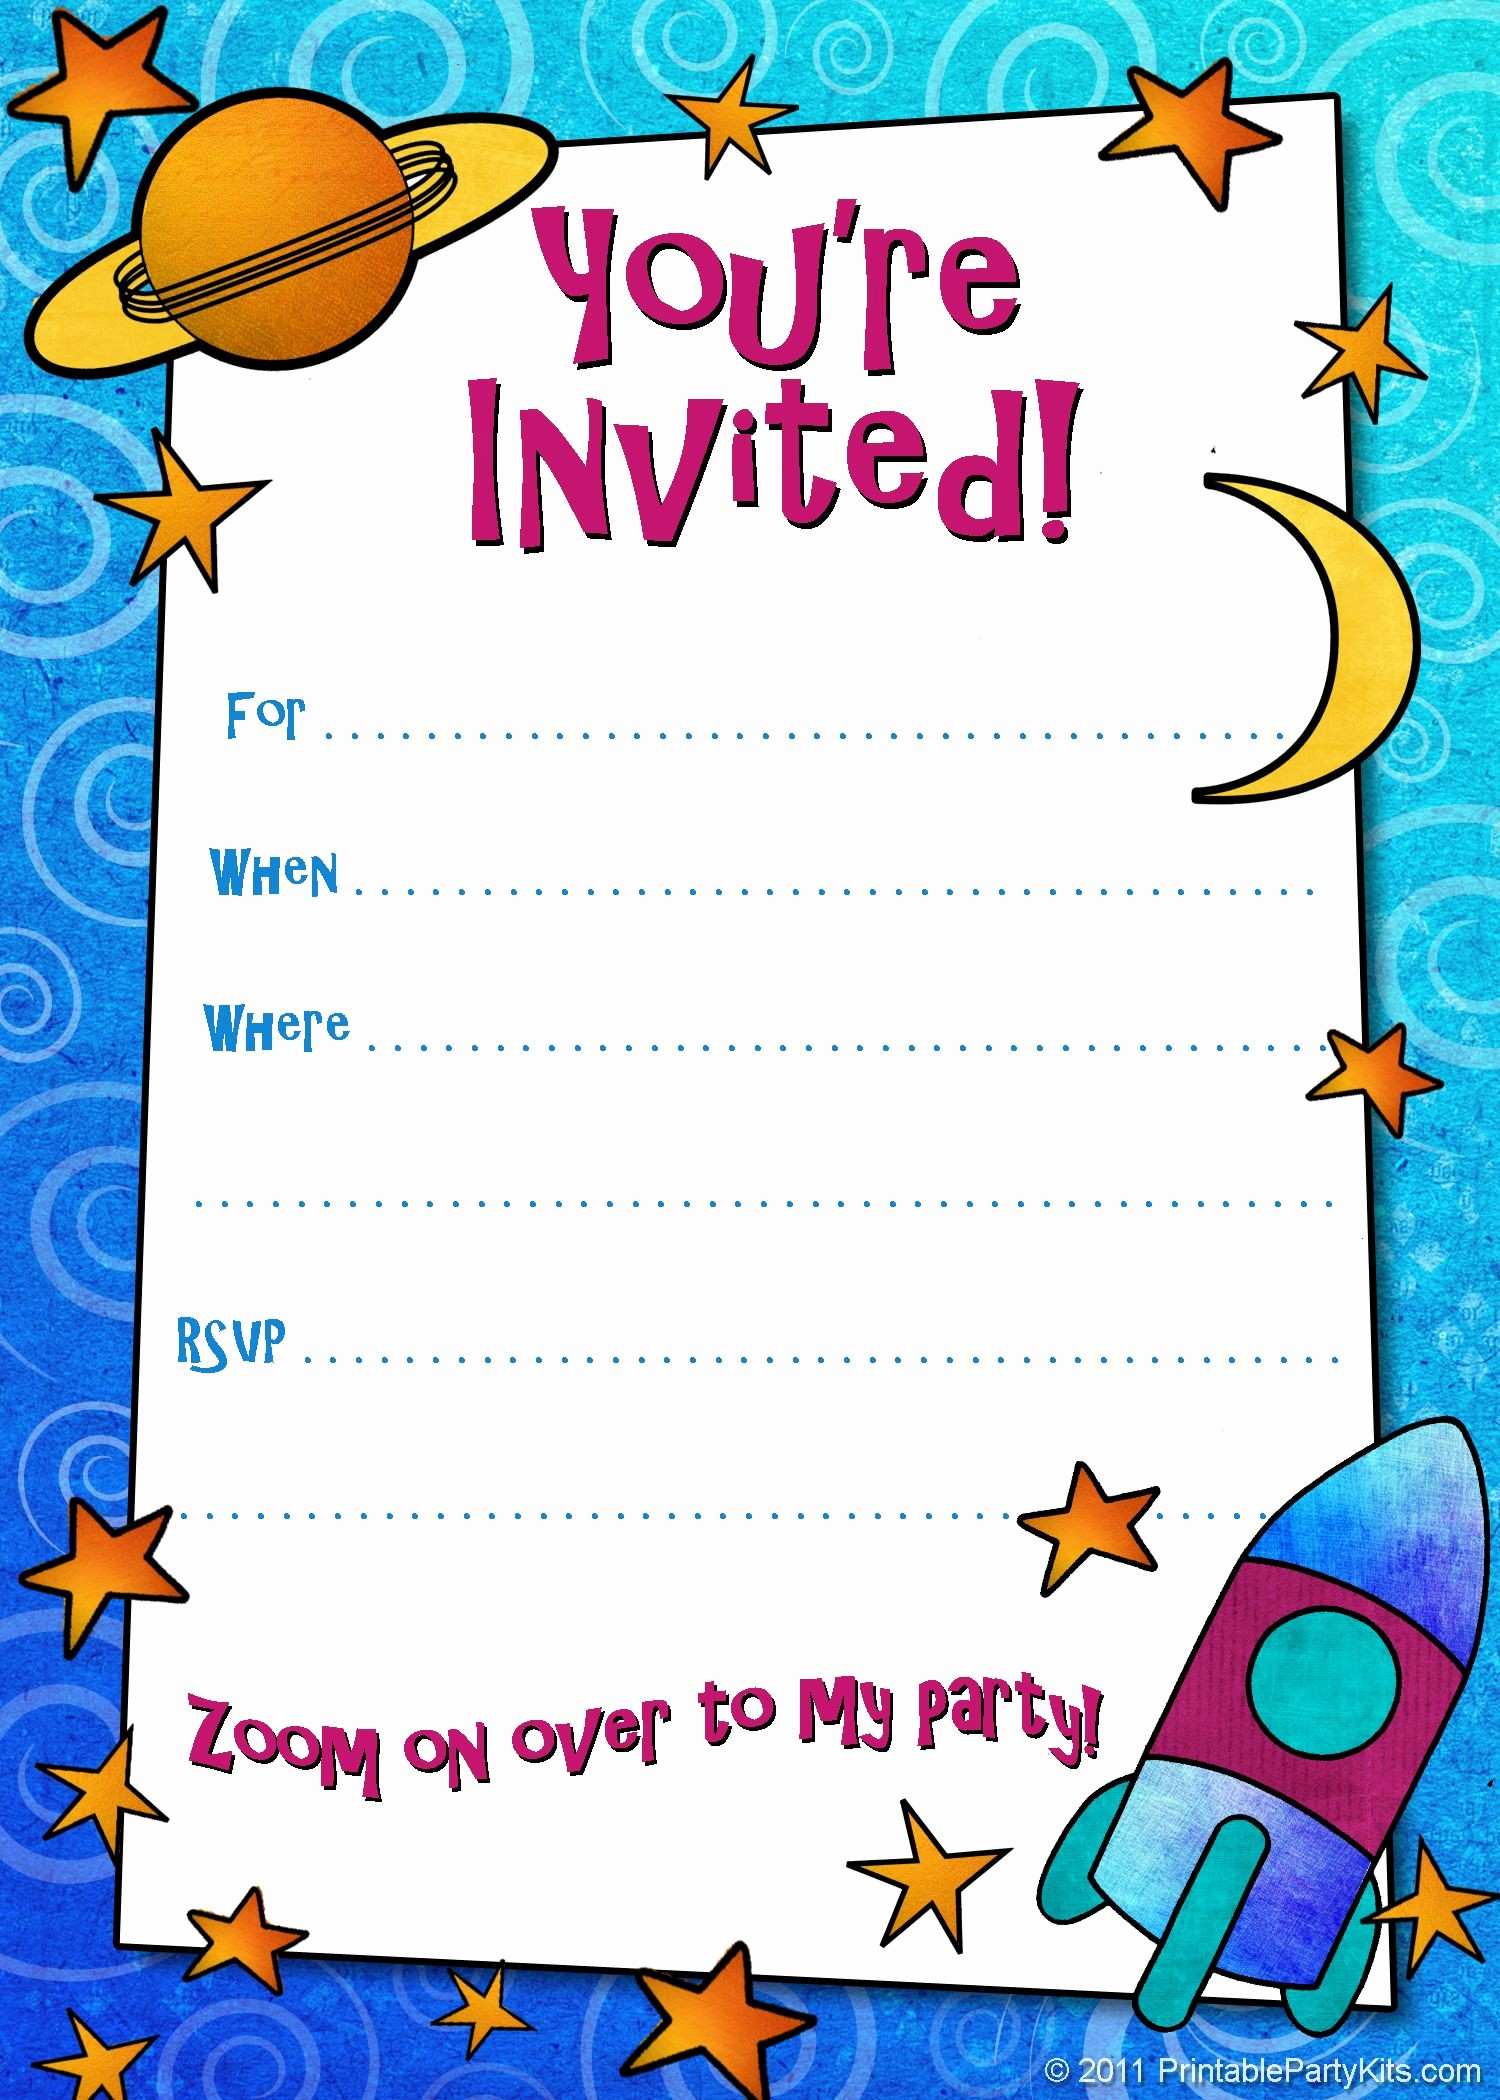 Kids Birthday Party Invite Templates Elegant Free Printable Boys Birthday Party Invitations